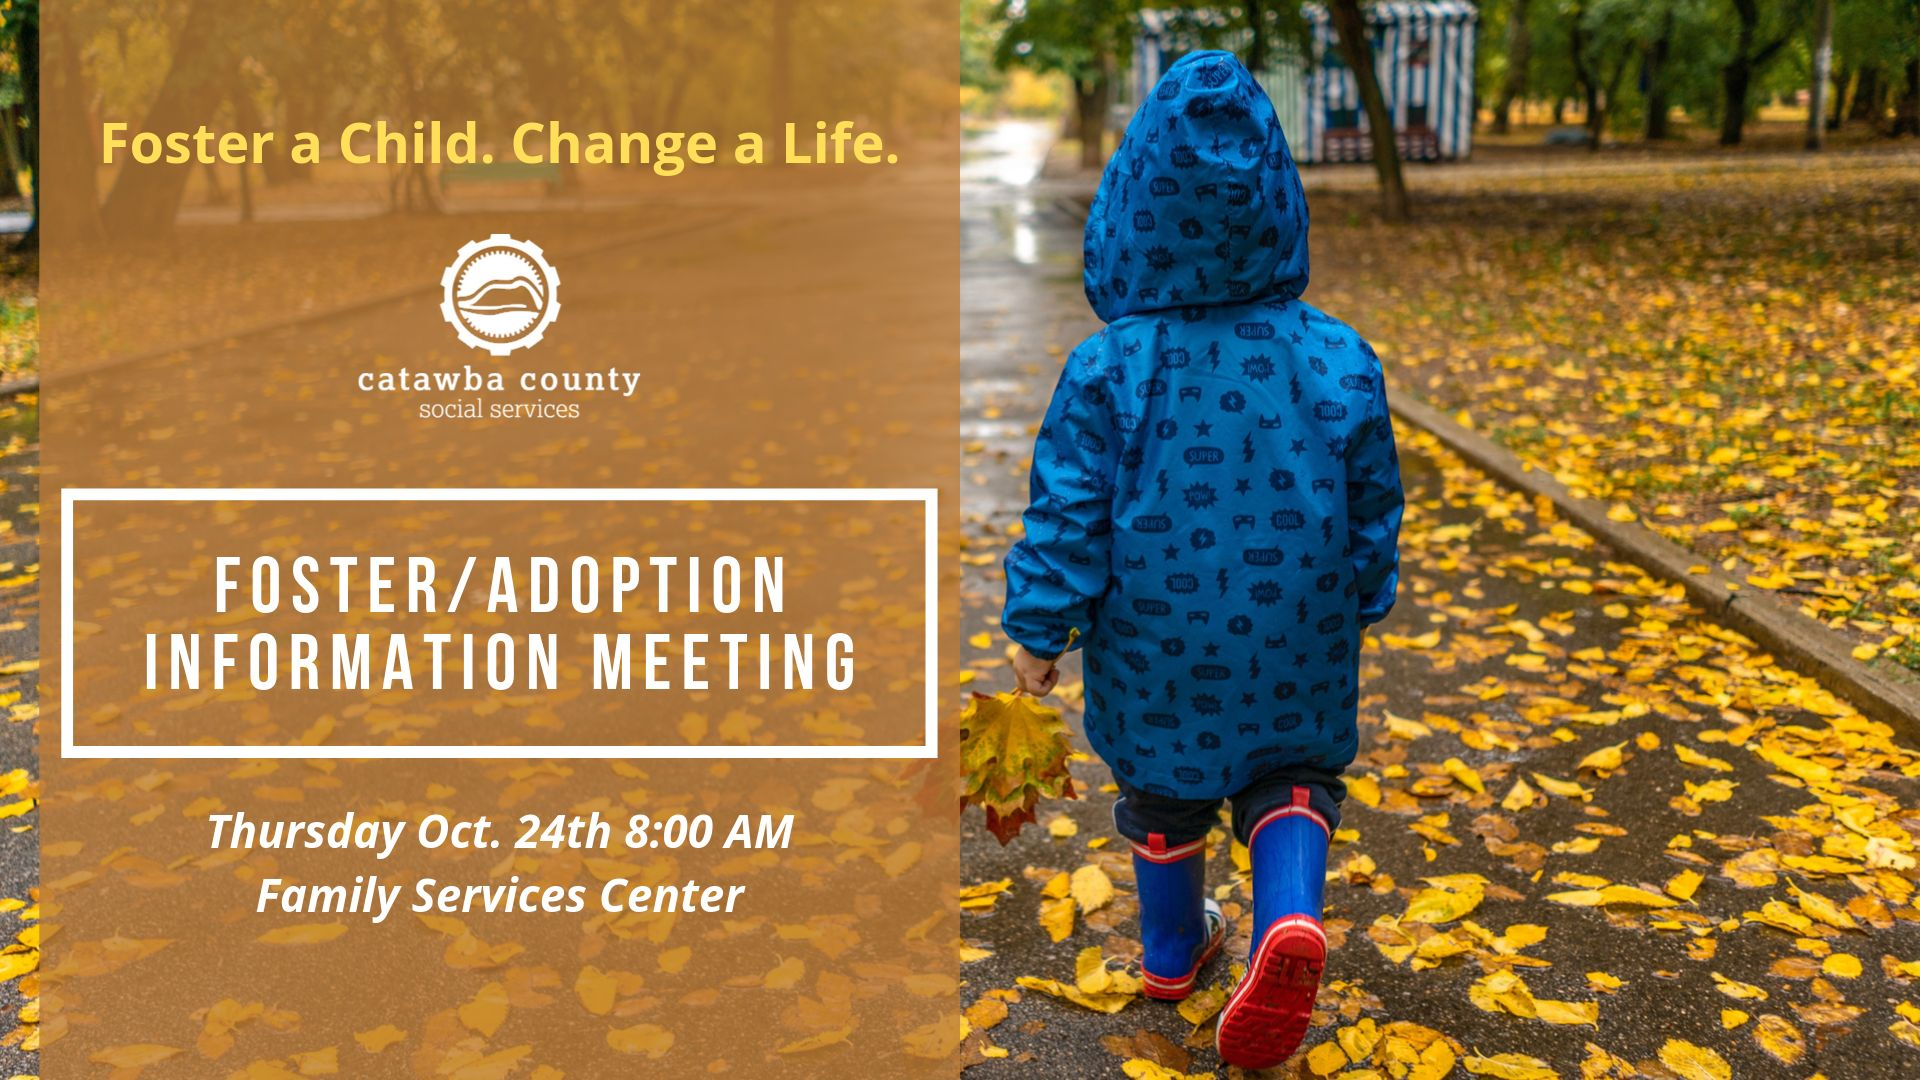 Morning Foster/Adoption Information Meeting 10-24-19